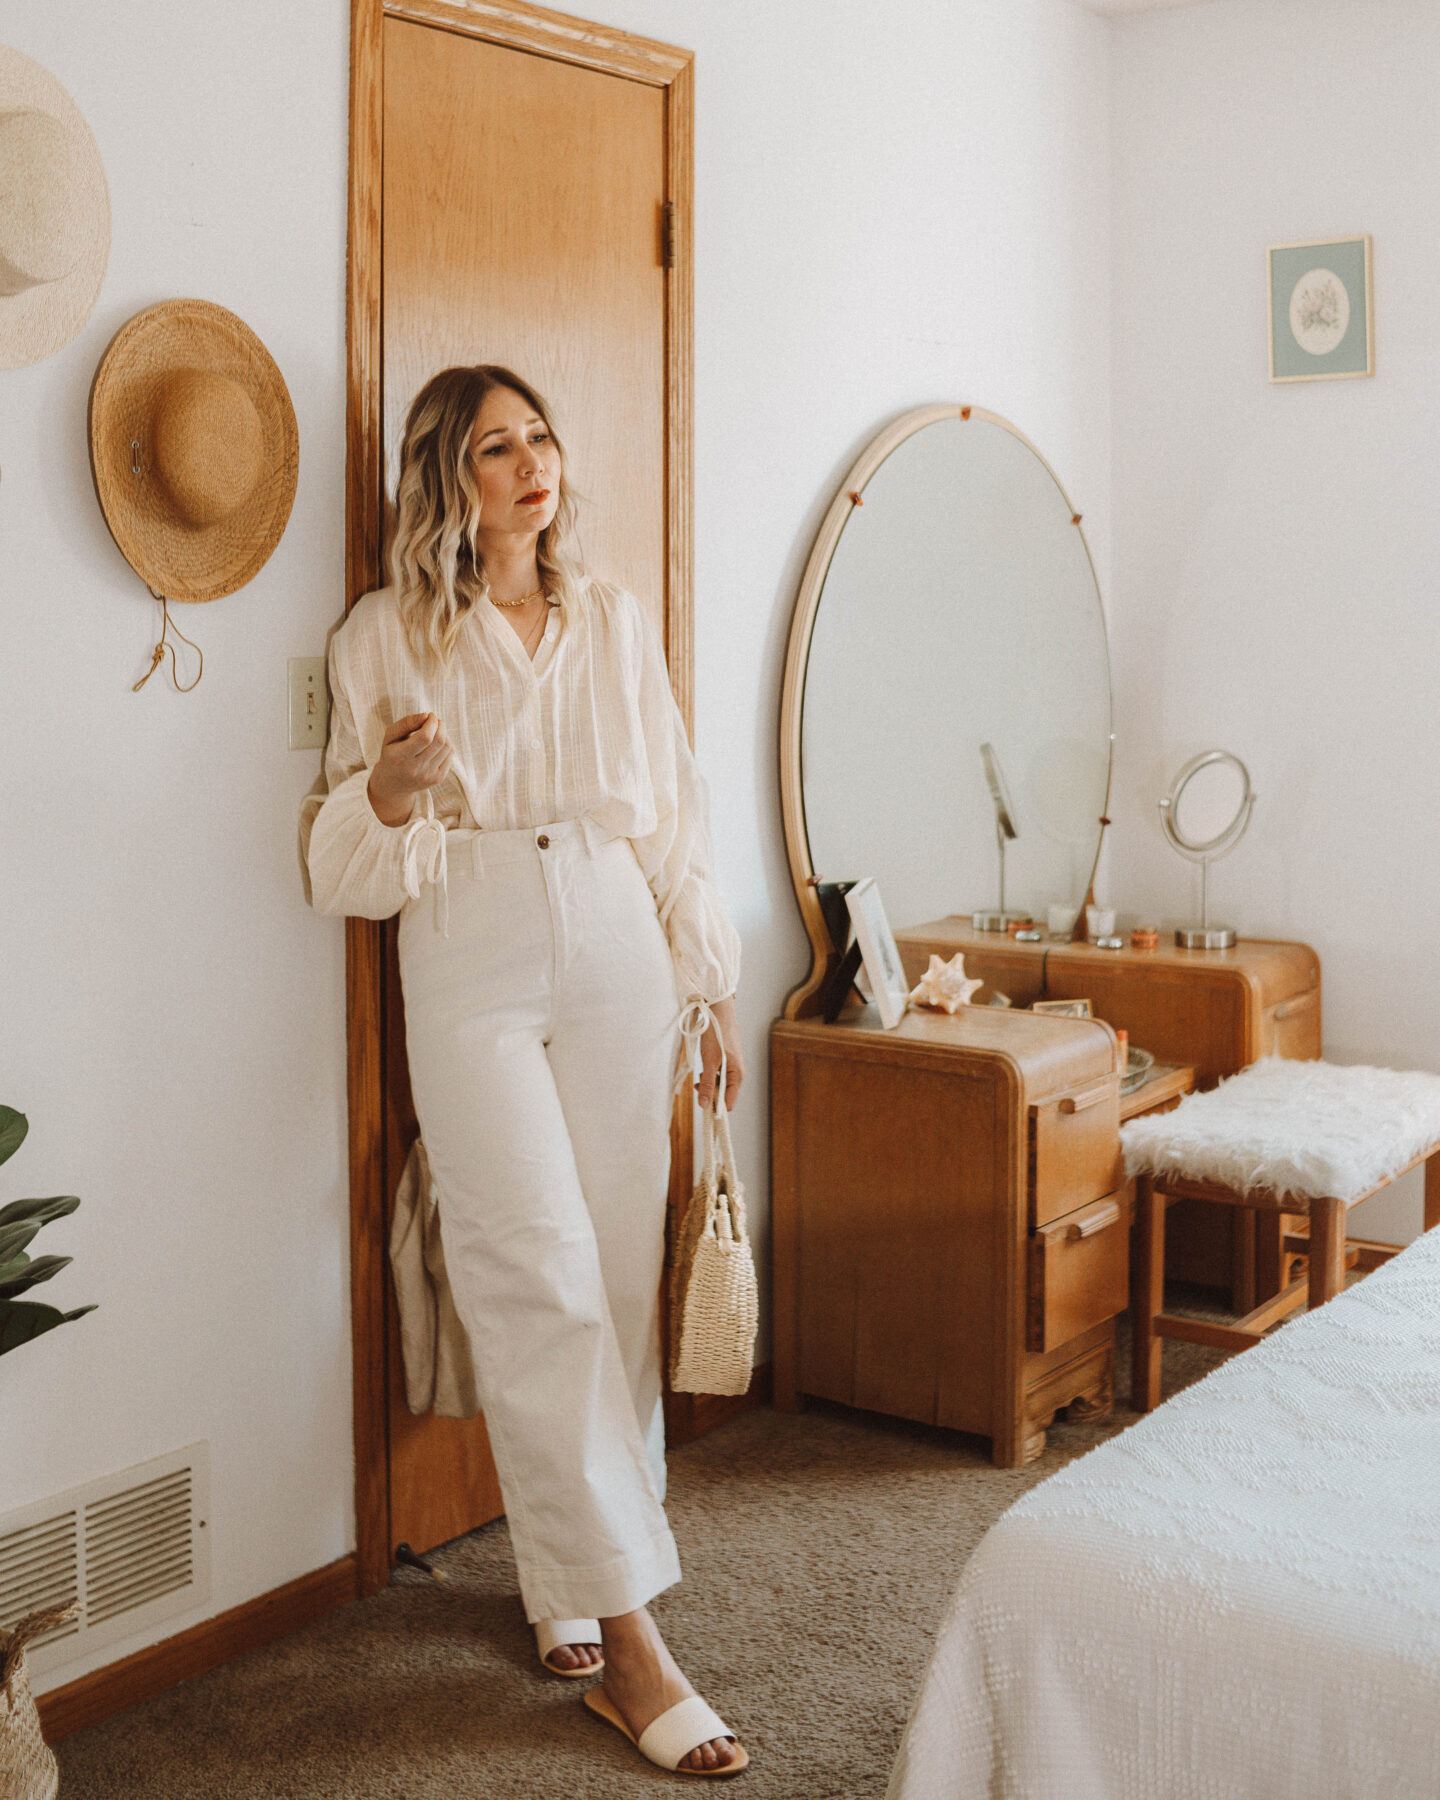 How to Style Wide Leg Pants + 6 Outfit Ideas, christy dawn faye top, gap white wide leg pants, nisolo isla slides, straw circle bag